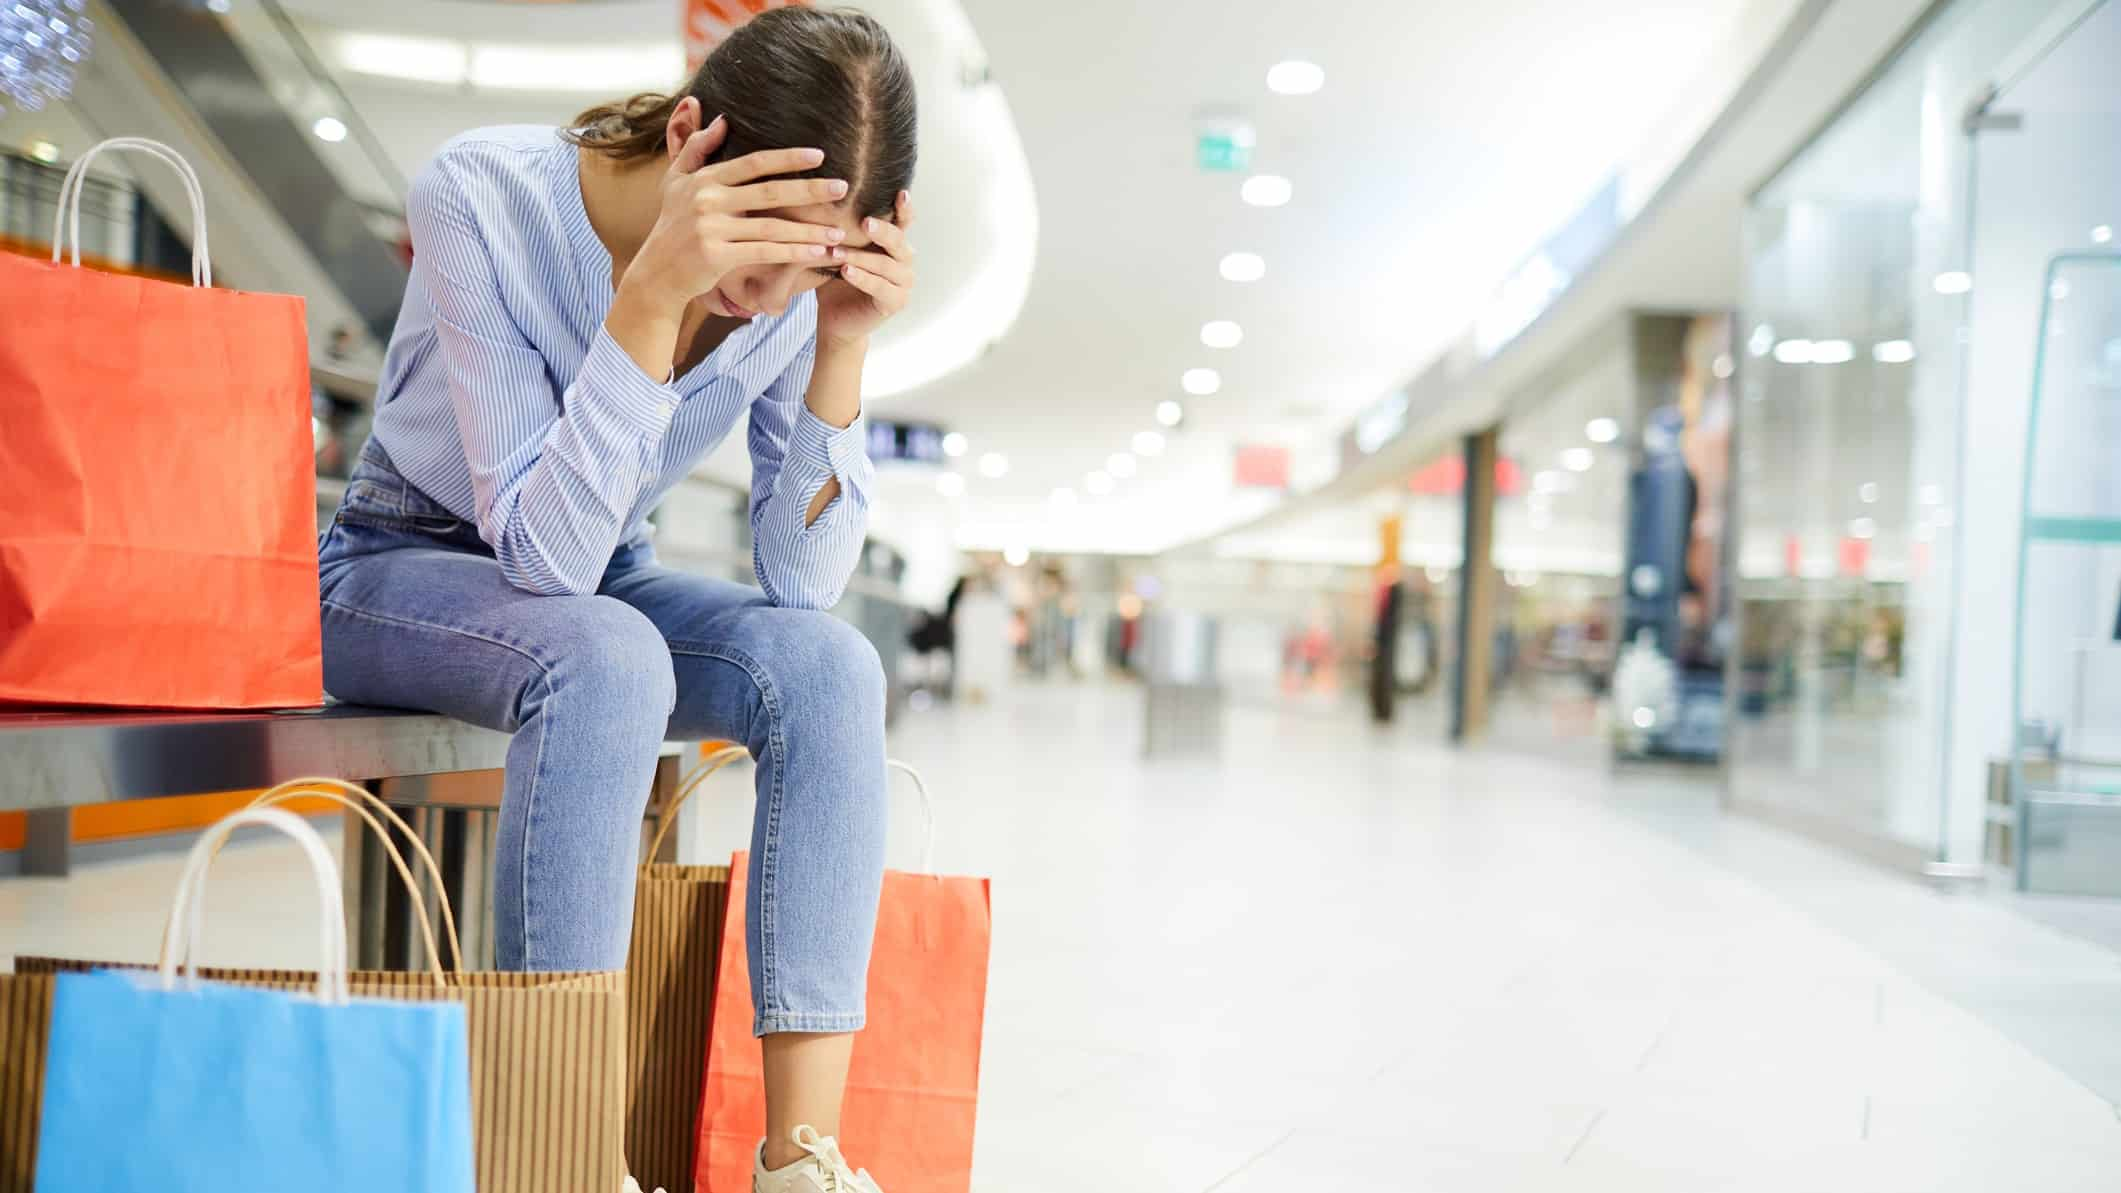 falling asx retail share price represented by sad shopper sitting in mall